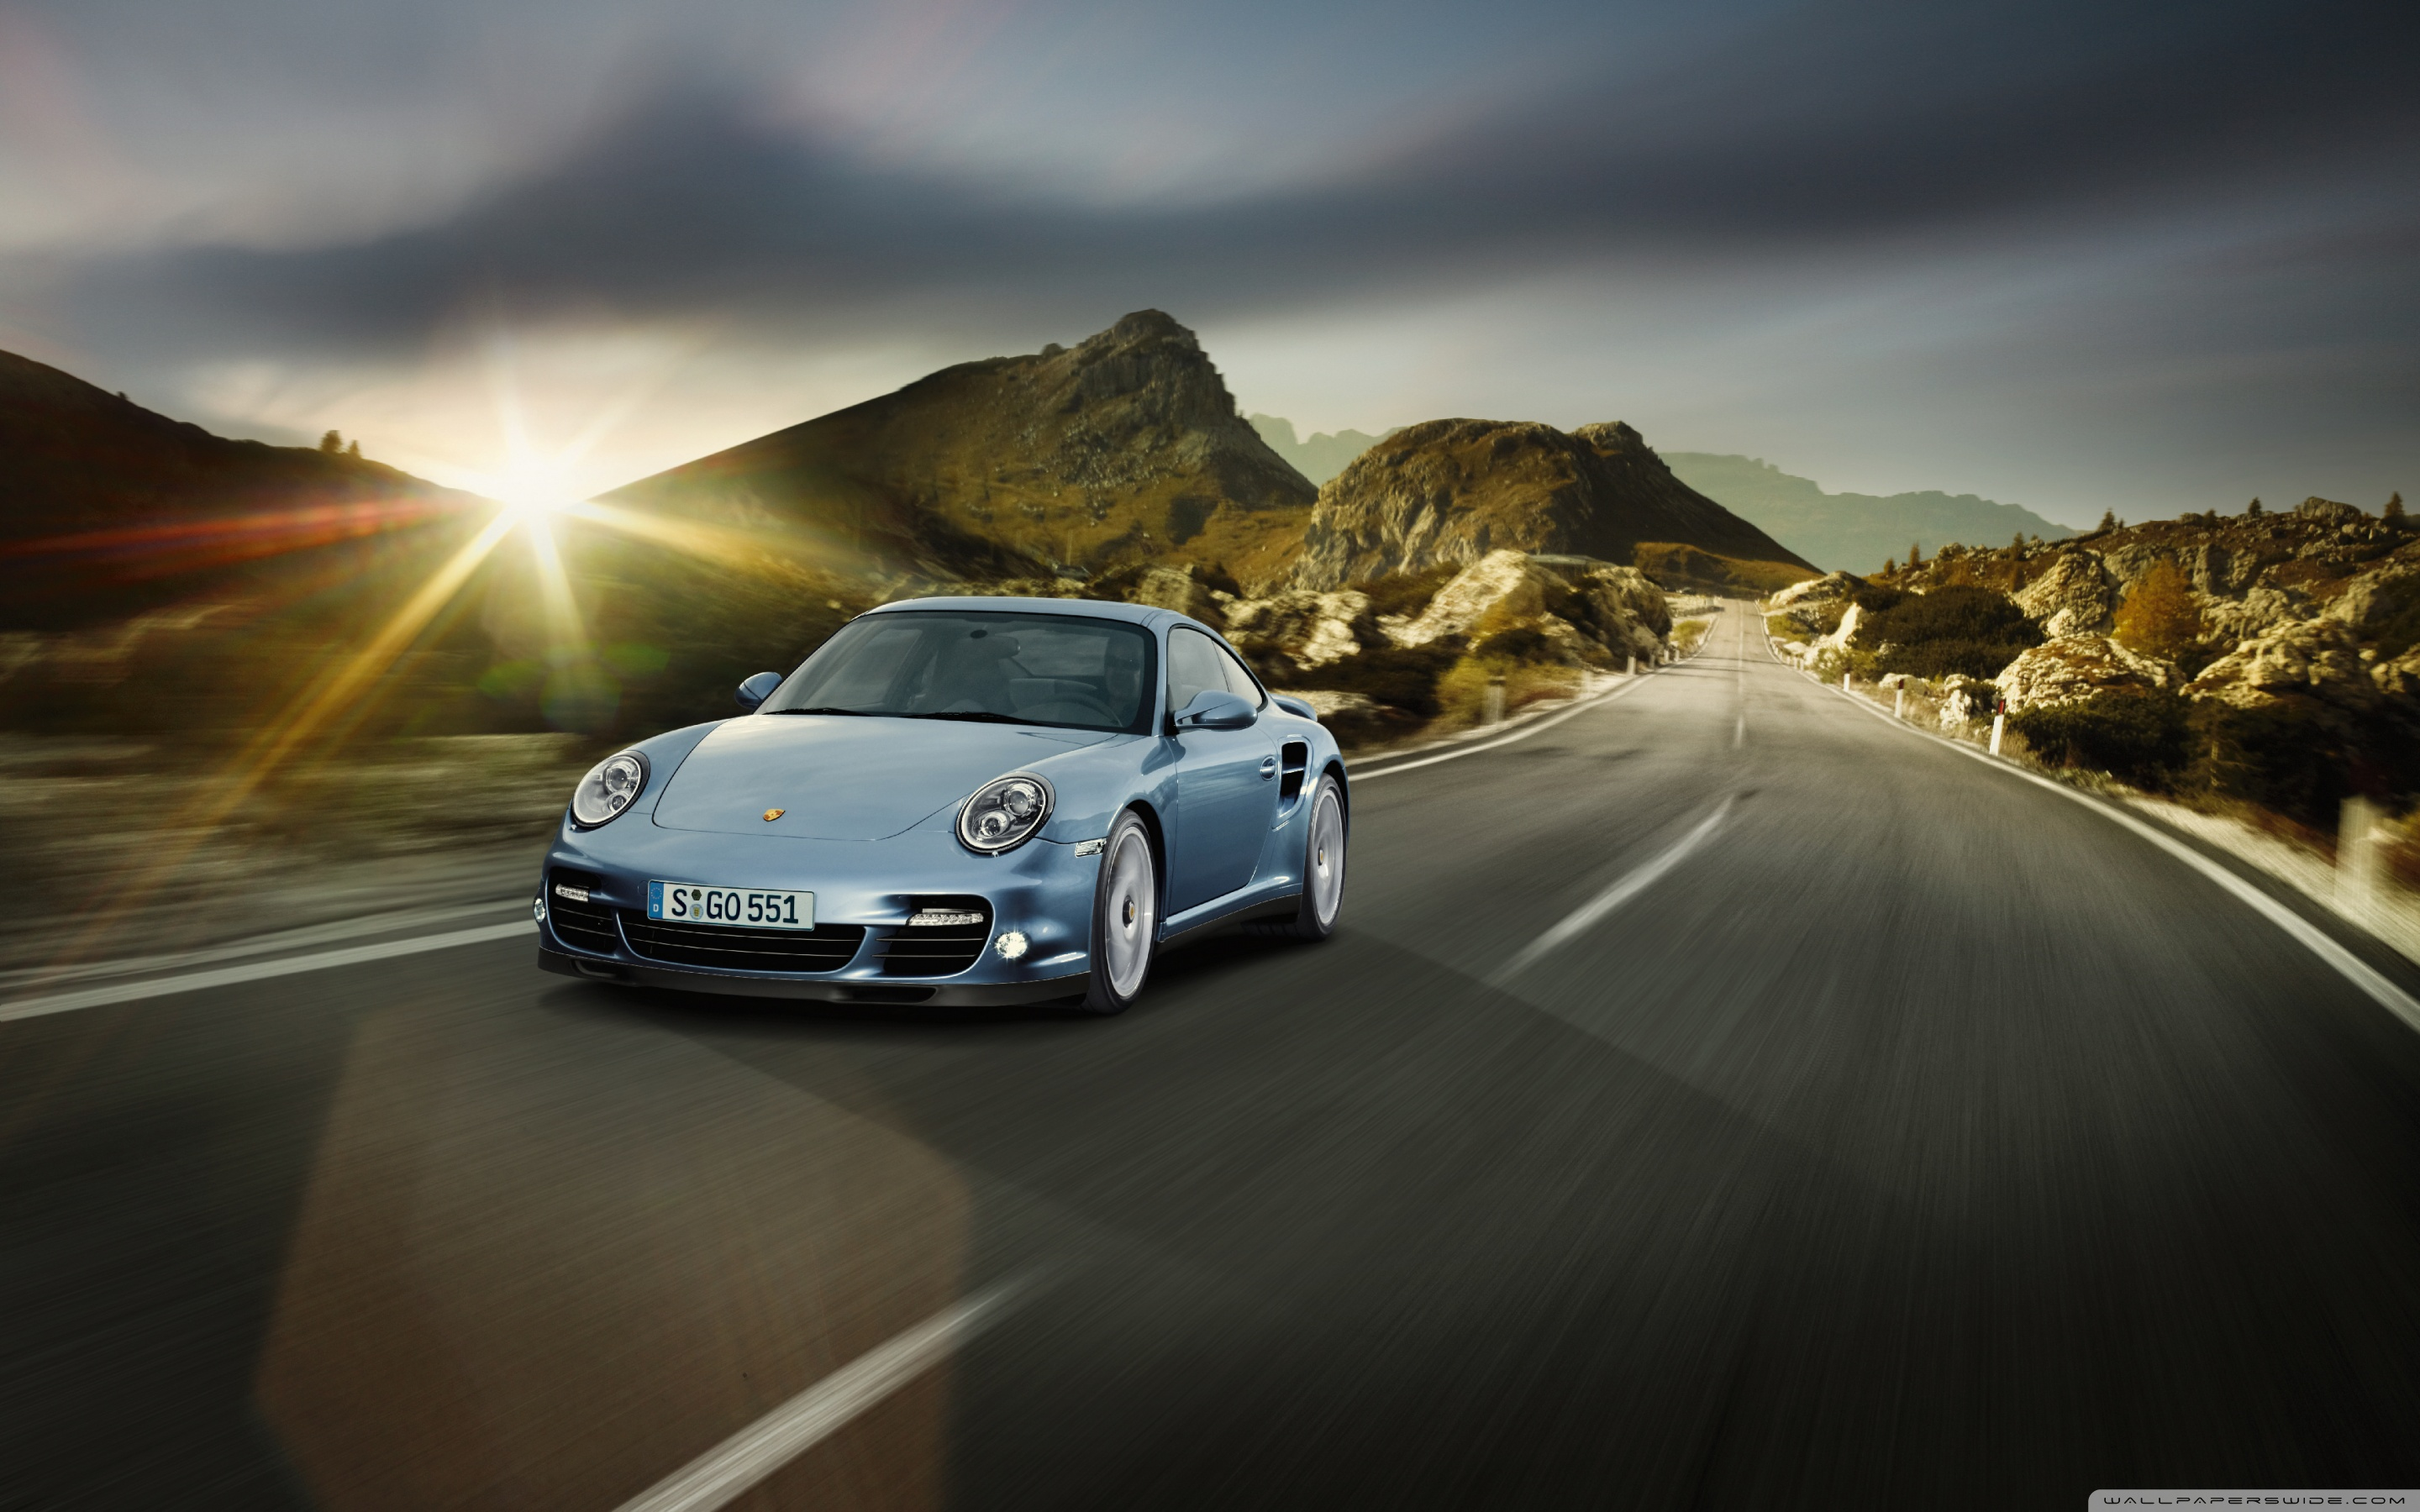 Porsche 911 Turbo Wallpapers and Background Images   stmednet 2880x1800